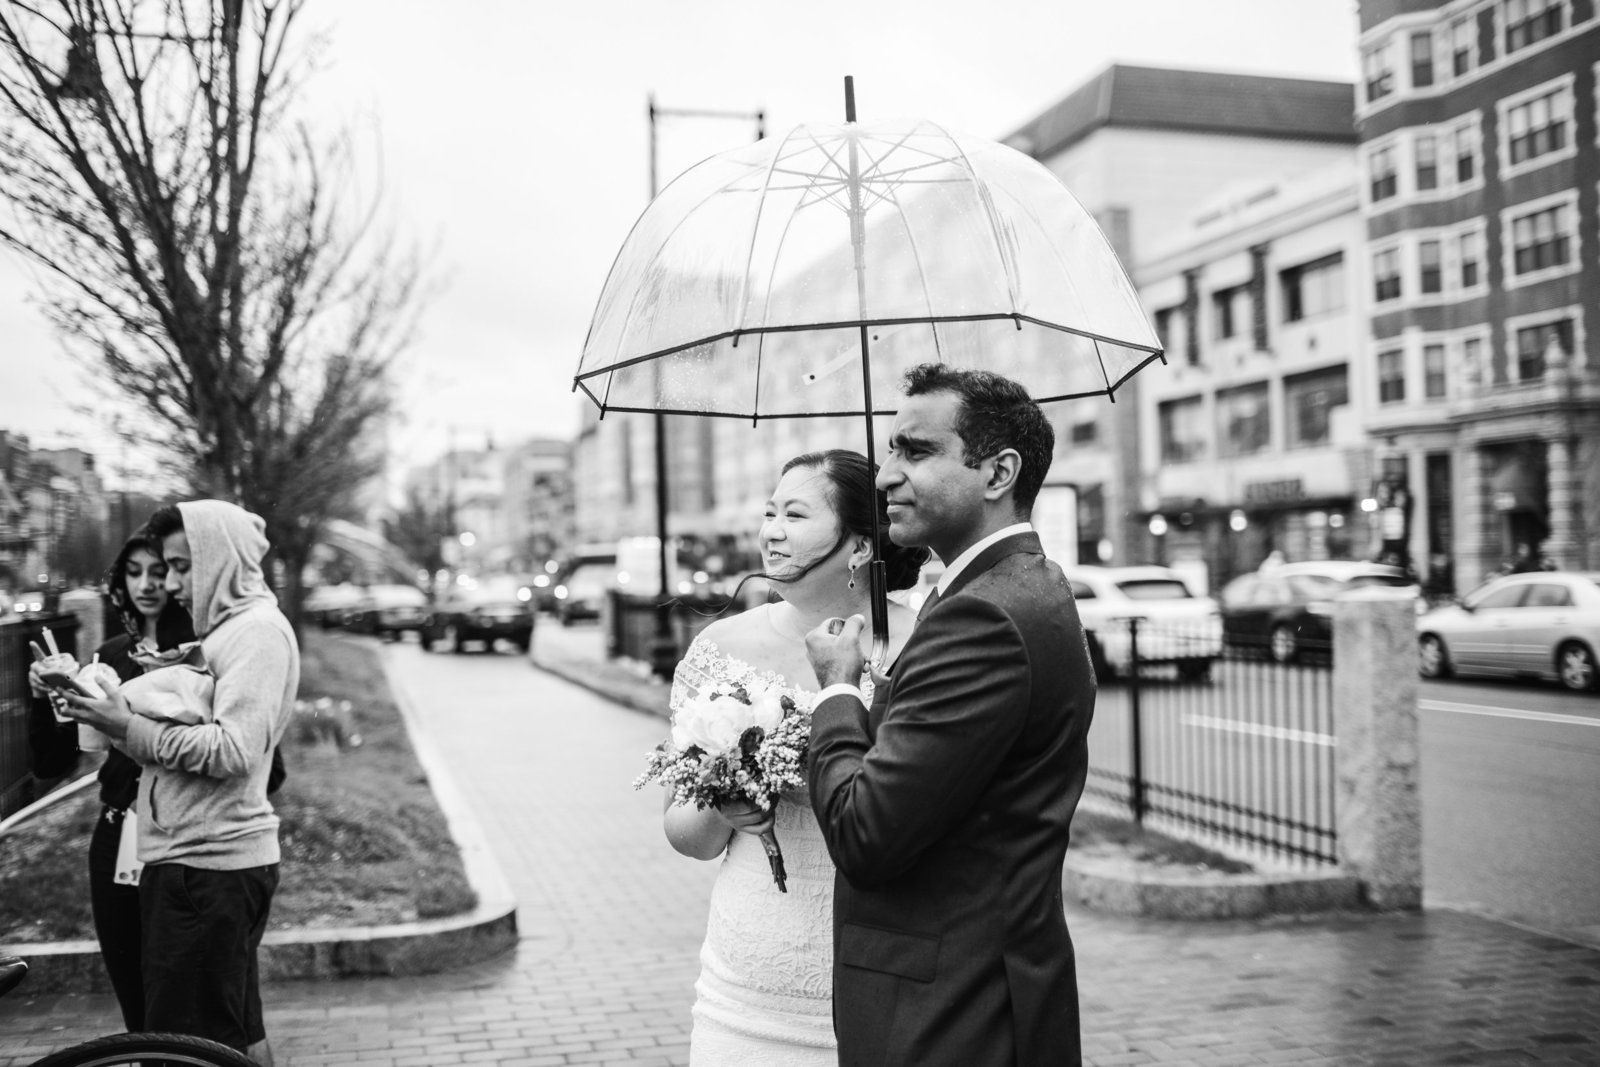 black and white portrait of a couple under an umbrella